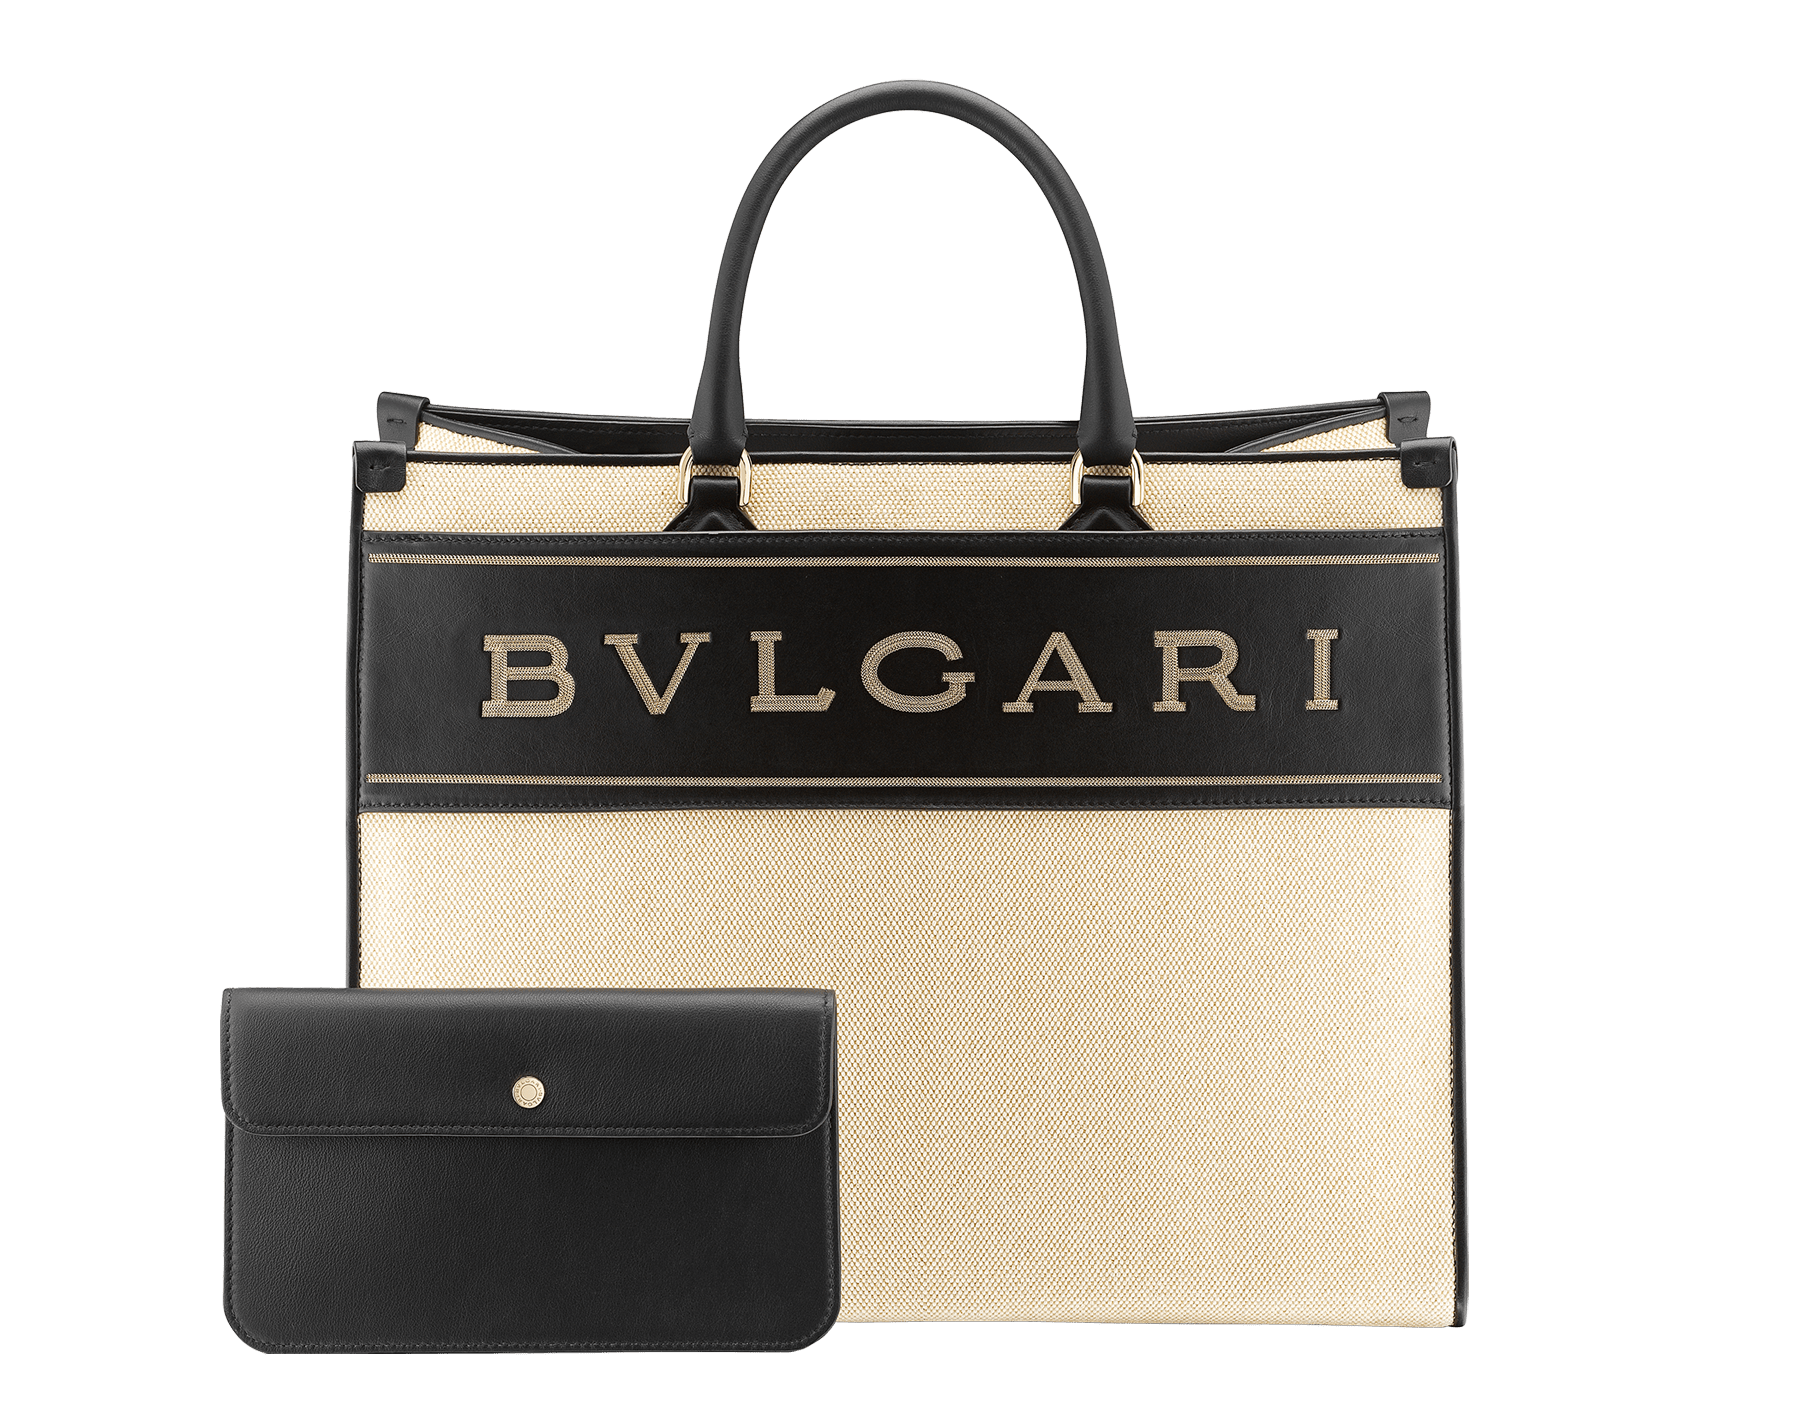 """""""Bvlgari Logo"""" large tote bag in black calf leather, with black grosgrain inner lining. Bvlgari logo featuring dark ruthenium-plated brass chain inserts on the black calf leather. BVL-1160 image 4"""